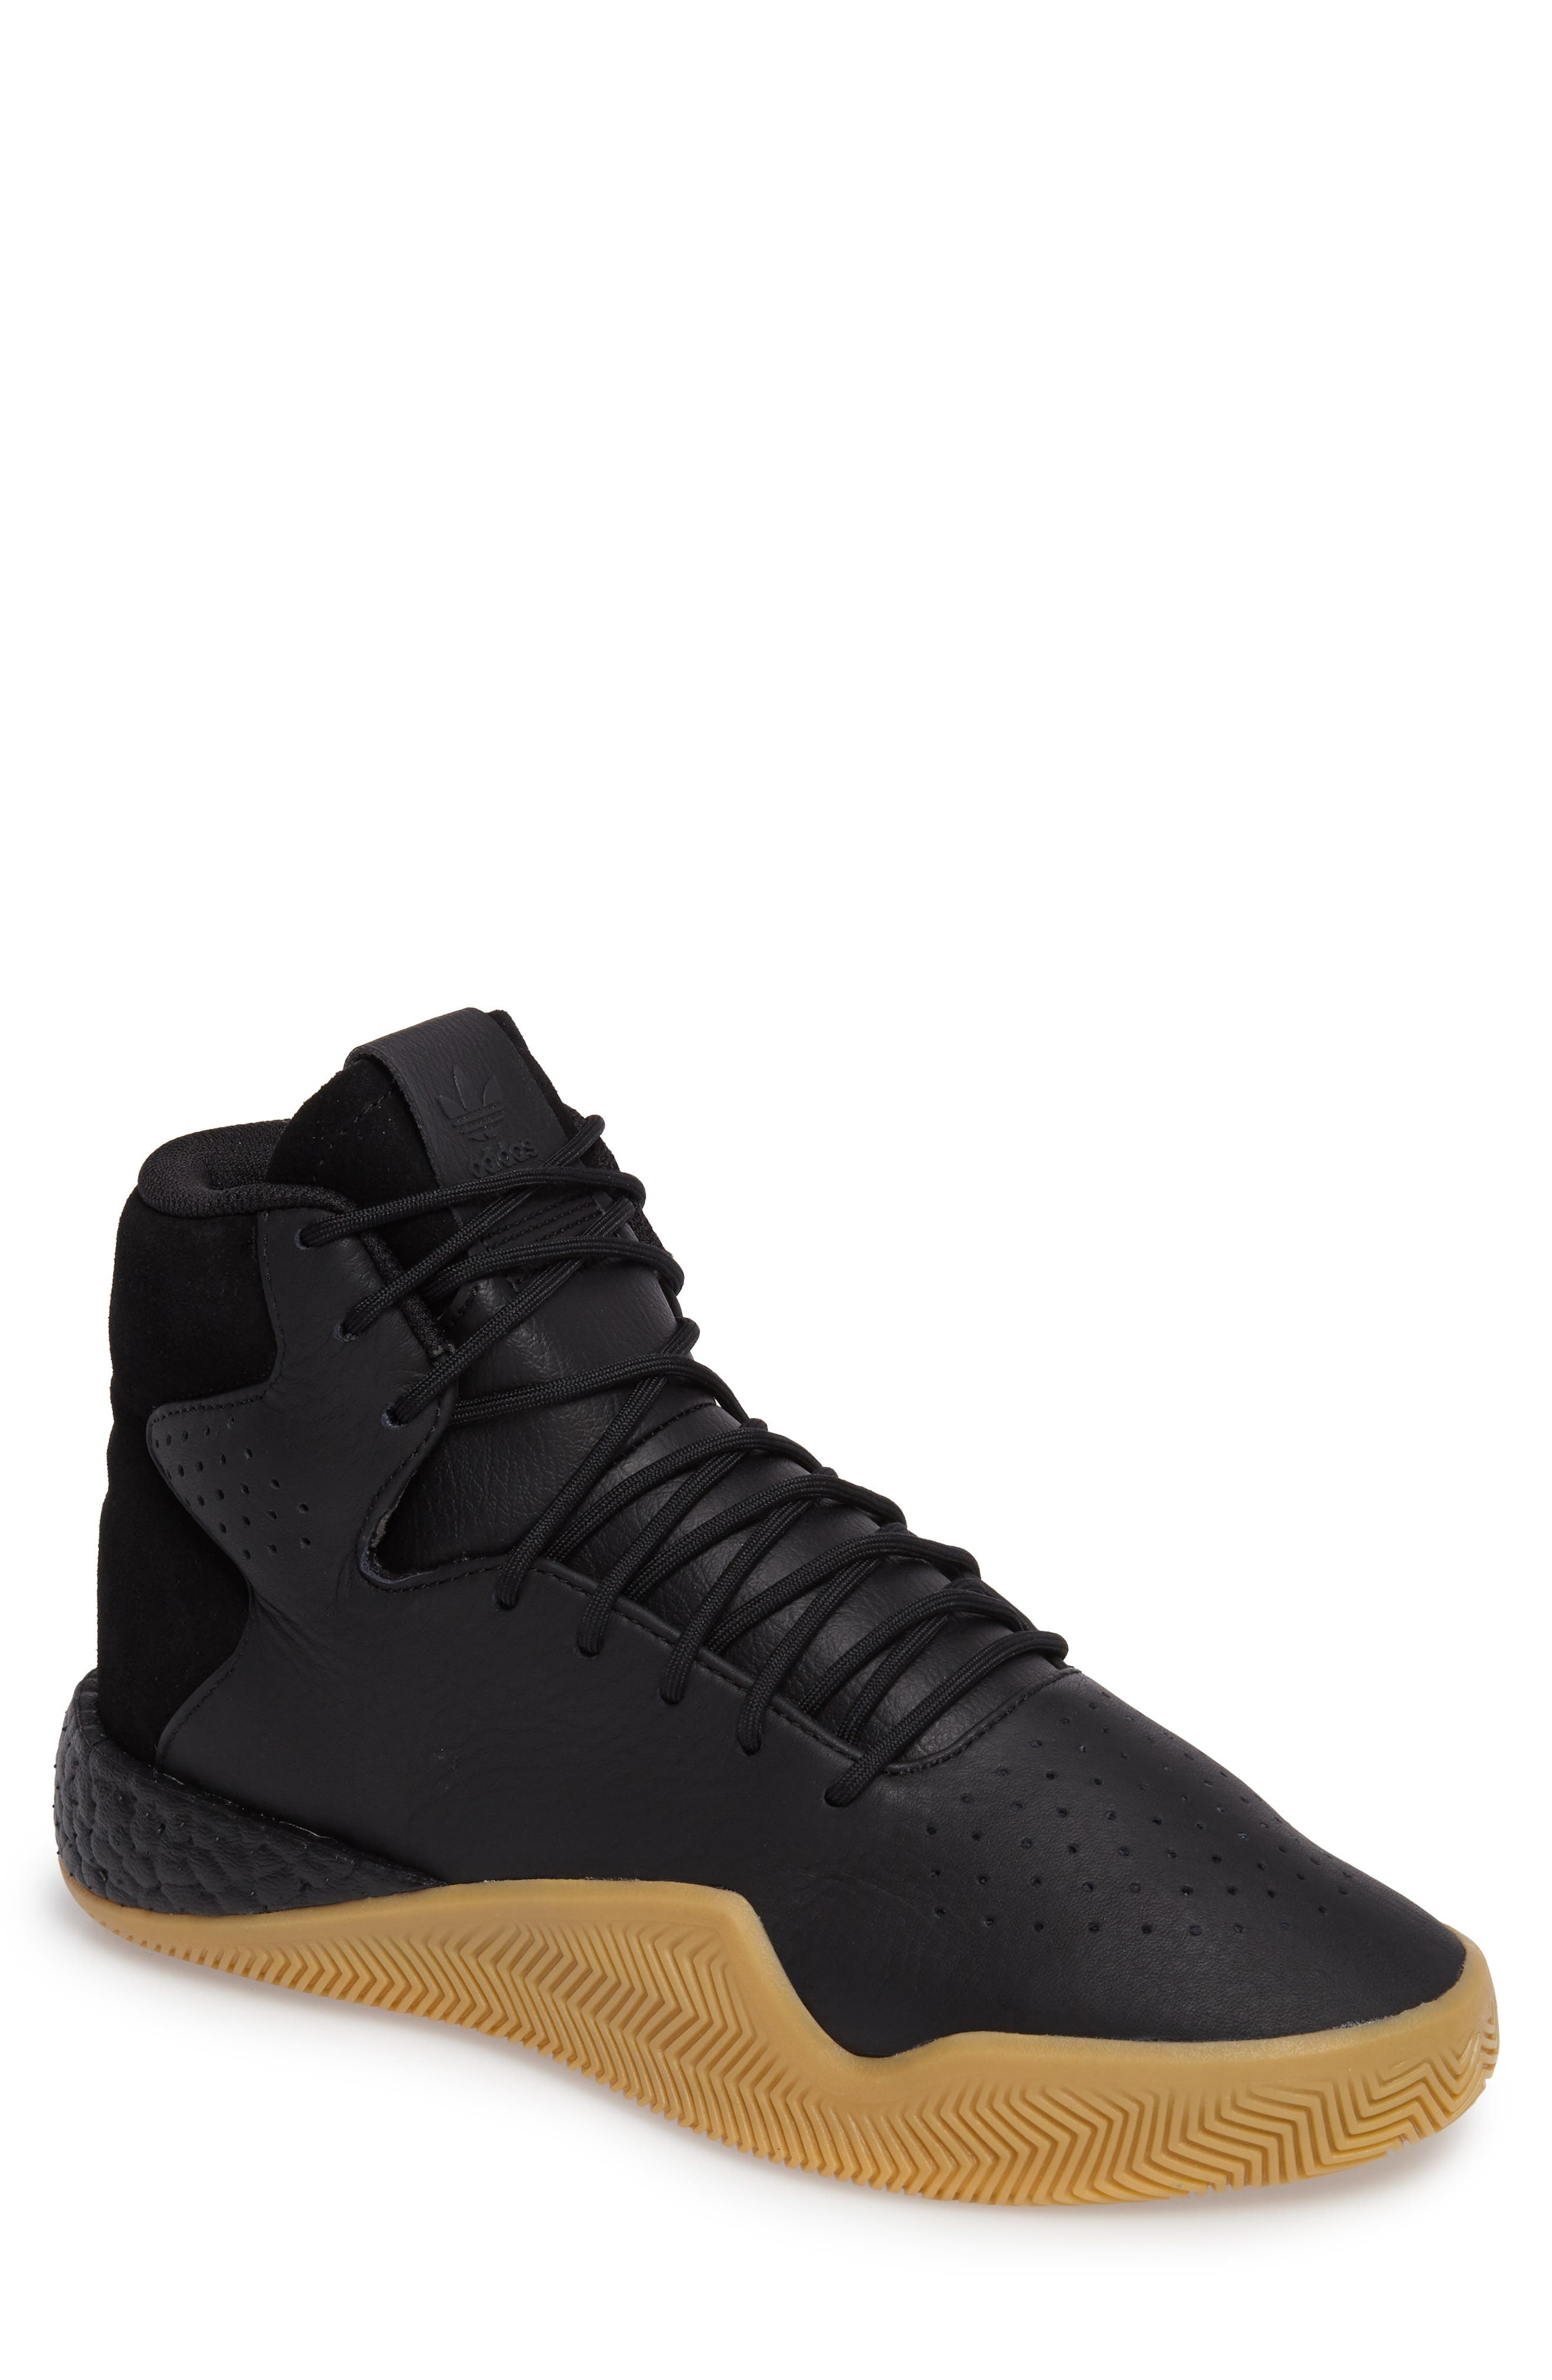 adidas Tubular Instinct Boost Sneaker (Men)